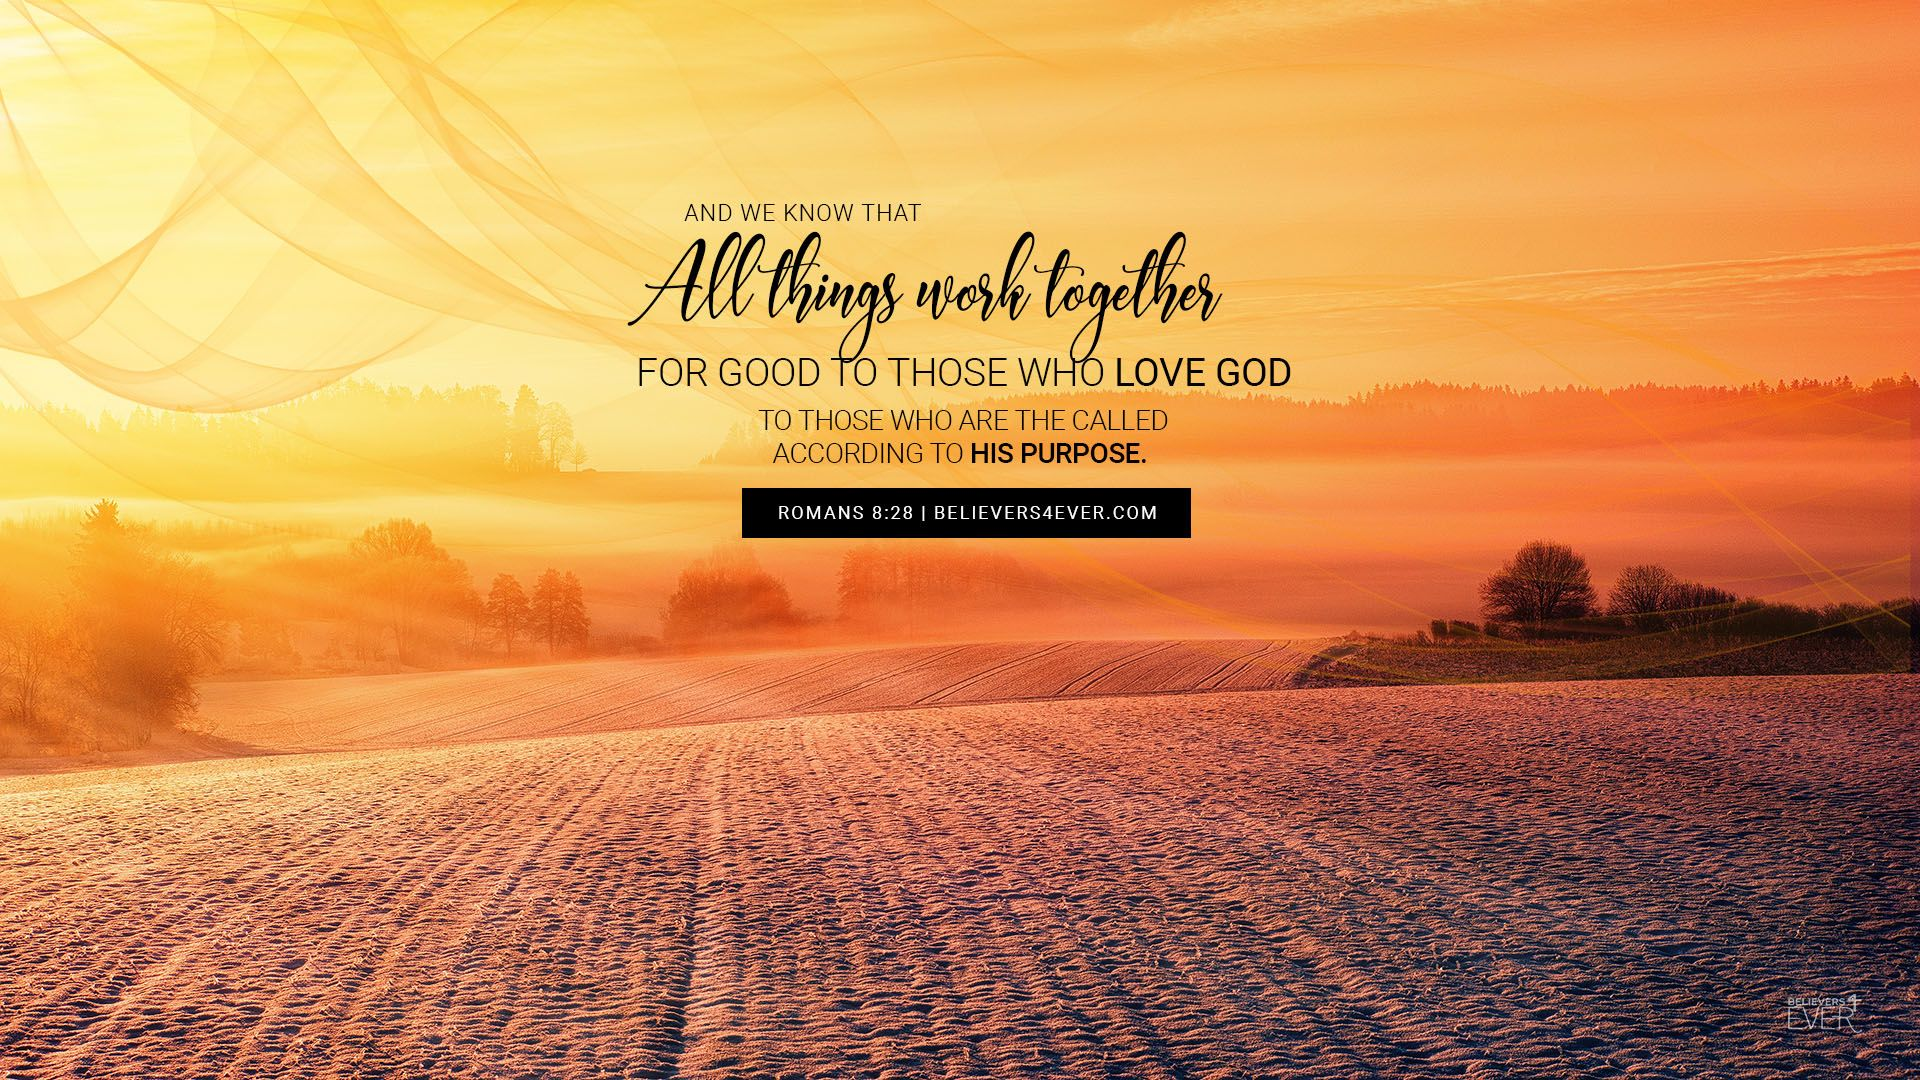 All Things Work Together Believers4ever Com All Things Work Together Bible Quotes Wallpaper Free Christian Wallpaper